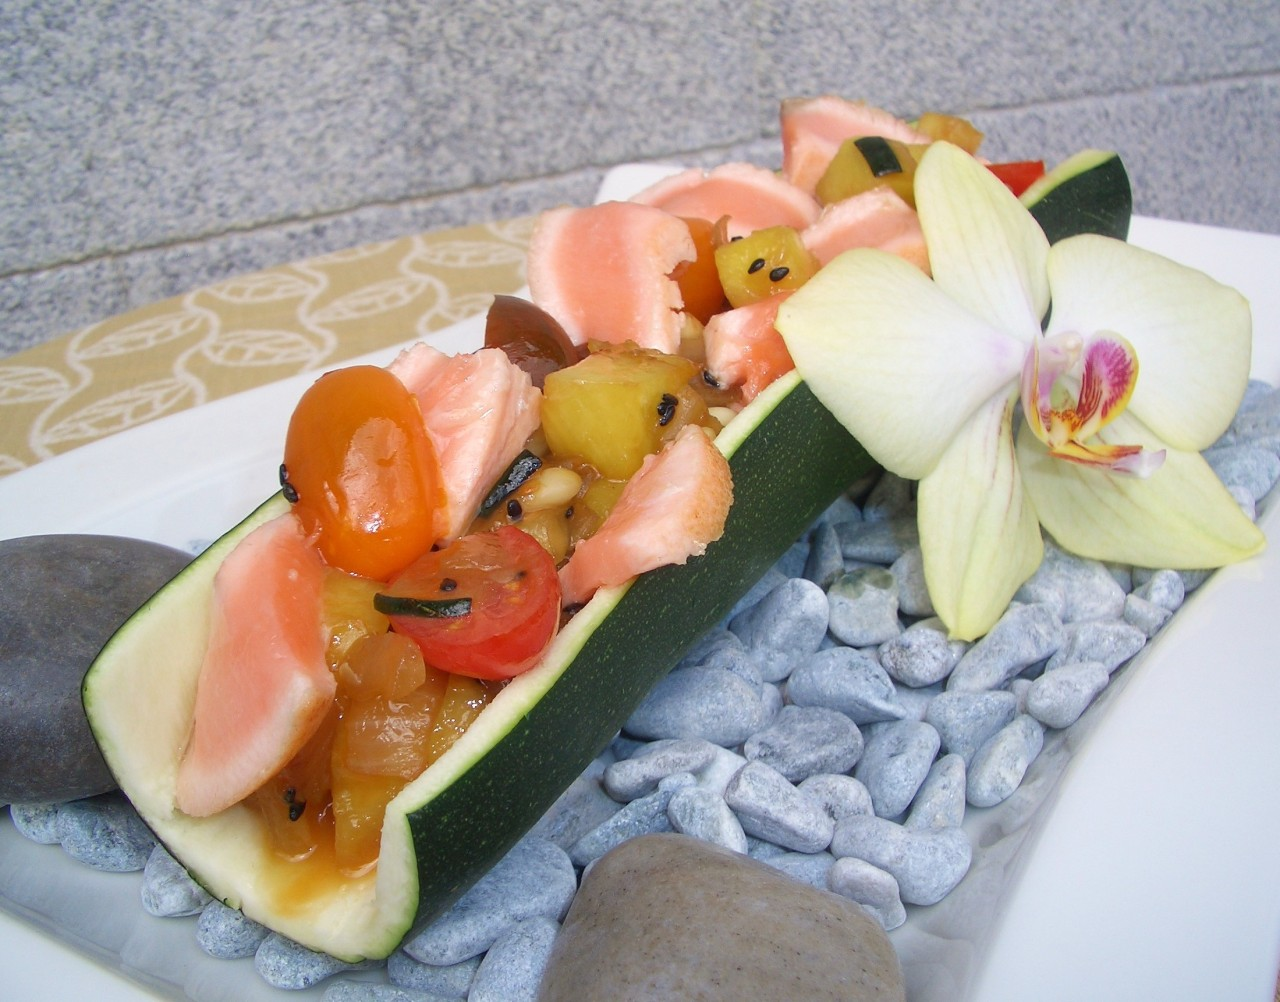 Calabacín Relleno de Salmón y Piña – Stuffed Zucchini with Salmon and Pineapple